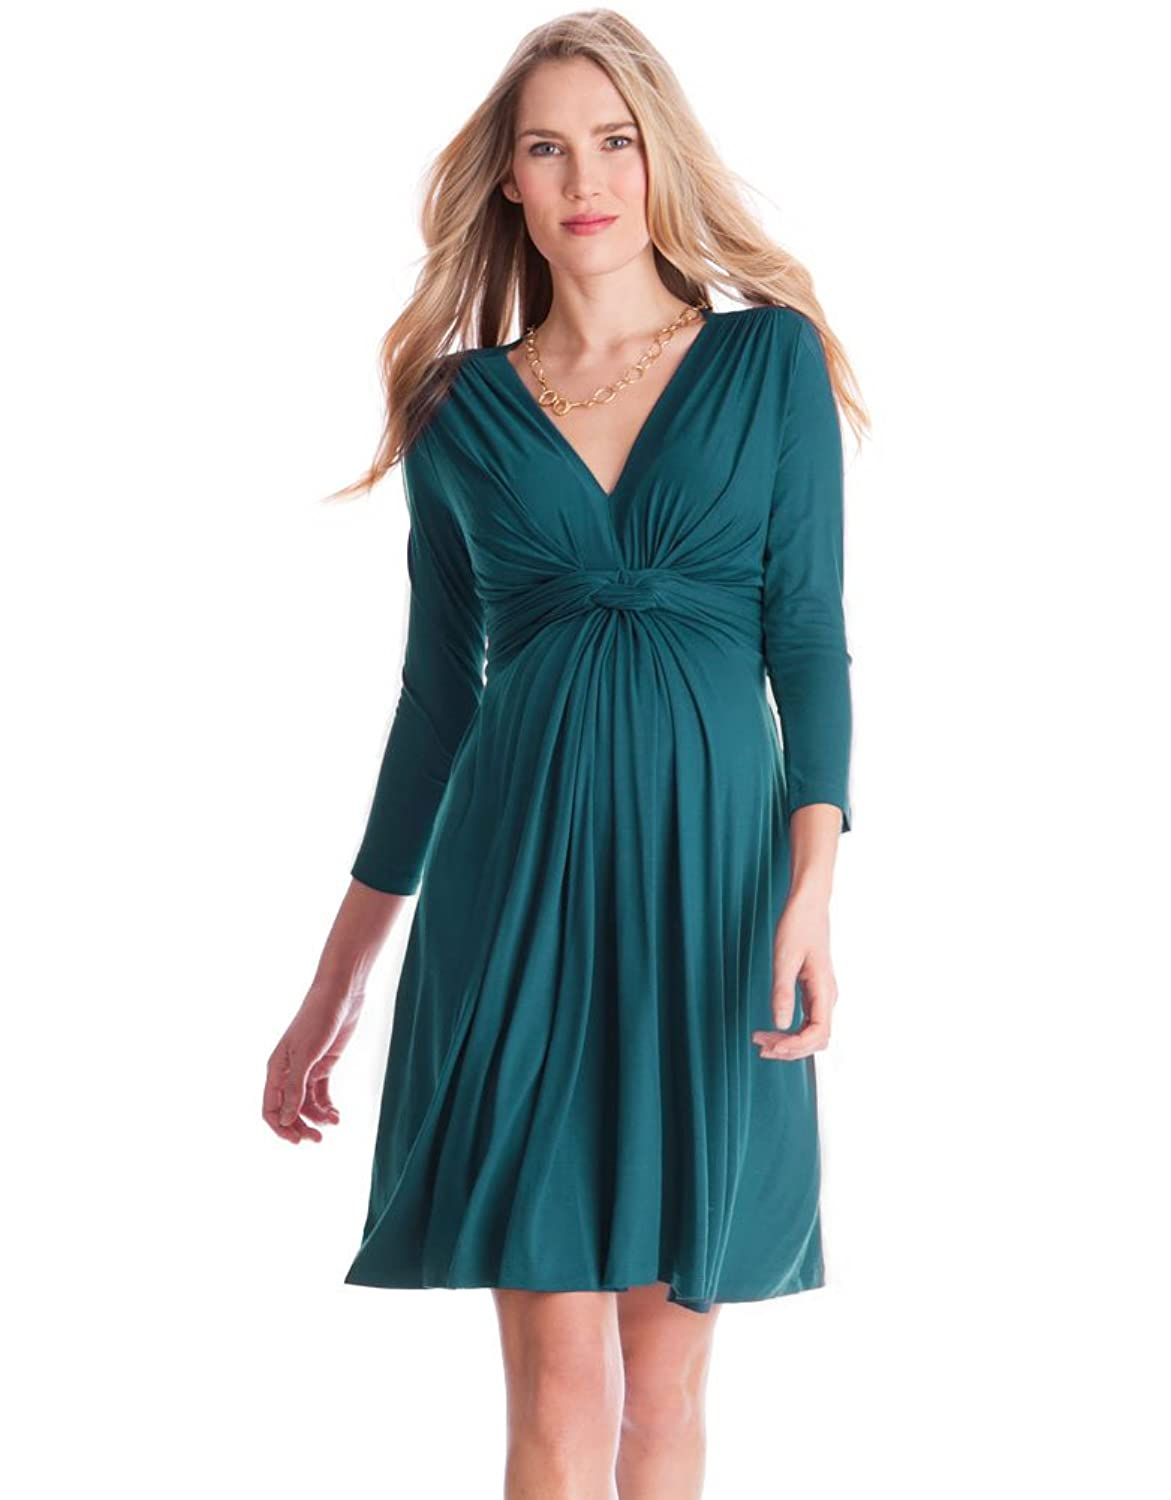 Seraphine adelaide maternity and nursing dress at amazon womens seraphine jolene knot front maternity and nursing dress ombrellifo Image collections